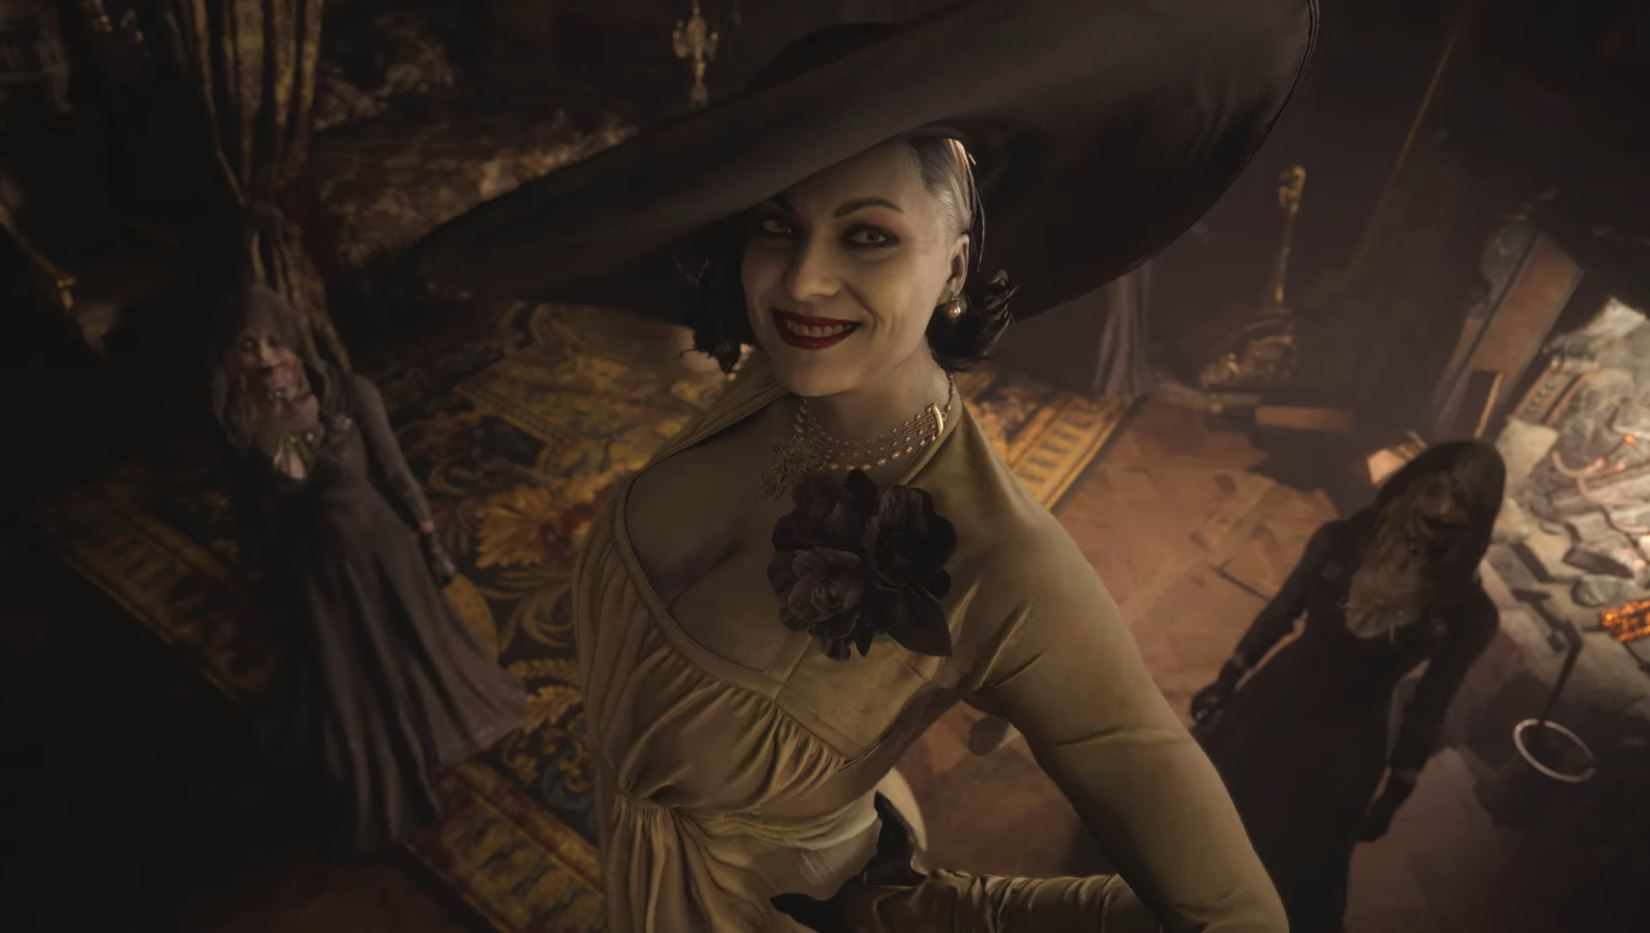 capcom-confirms-resident-evil-villages-lady-dimitrescu-height-is-2-9-meters-9-foot-6-inches-tall